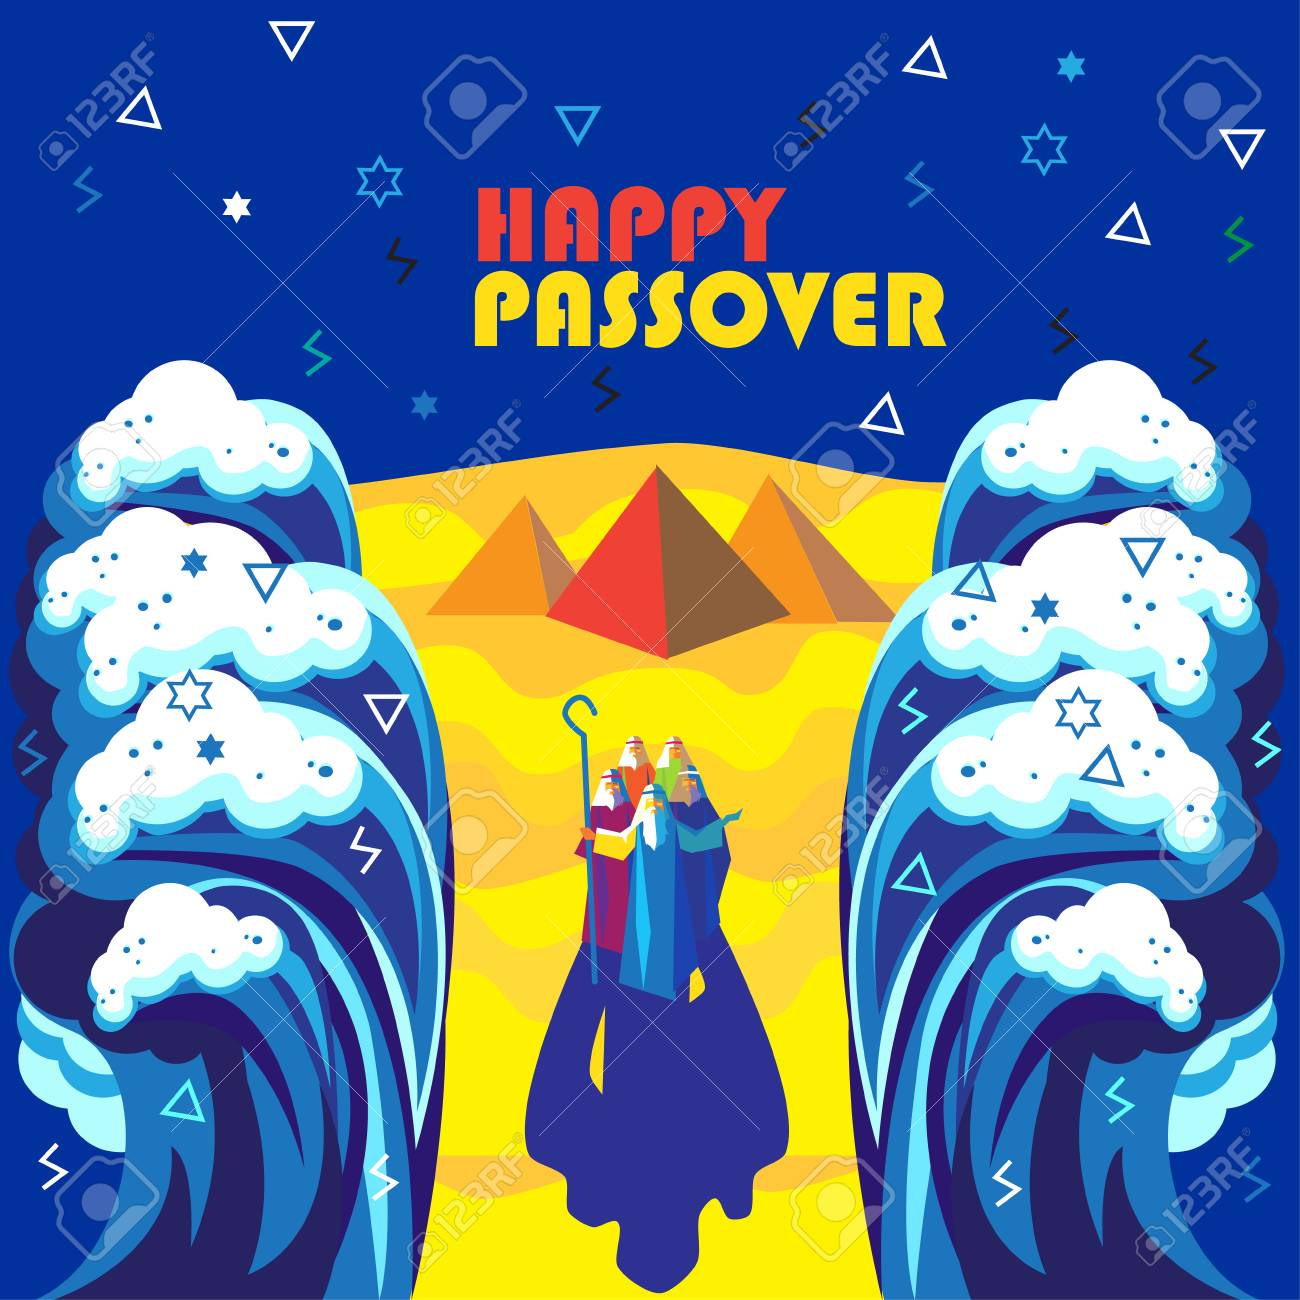 Happy passover abstract greeting card futuristic style passover happy passover abstract greeting card futuristic style passover jewish holiday decorative poster with moses m4hsunfo